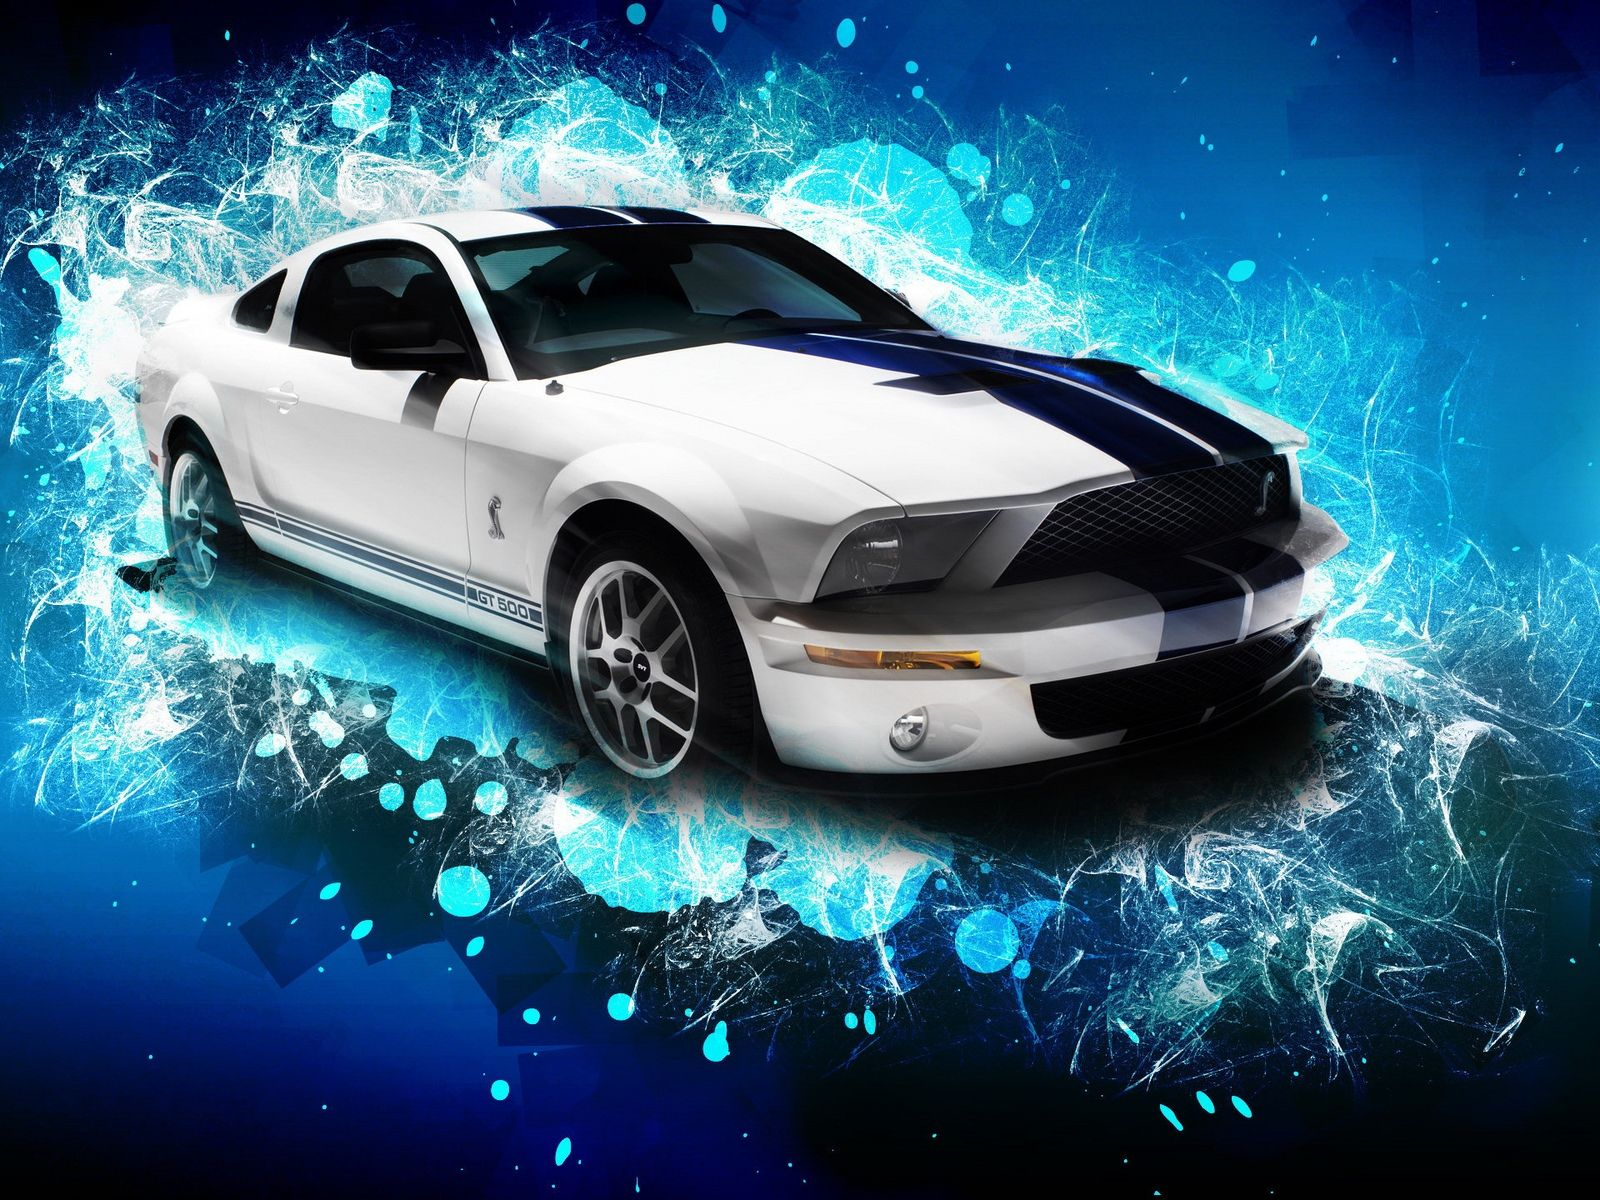 Hd wallpaper of cars - Find This Pin And More On Hd Wallpapers By Downloadwalls